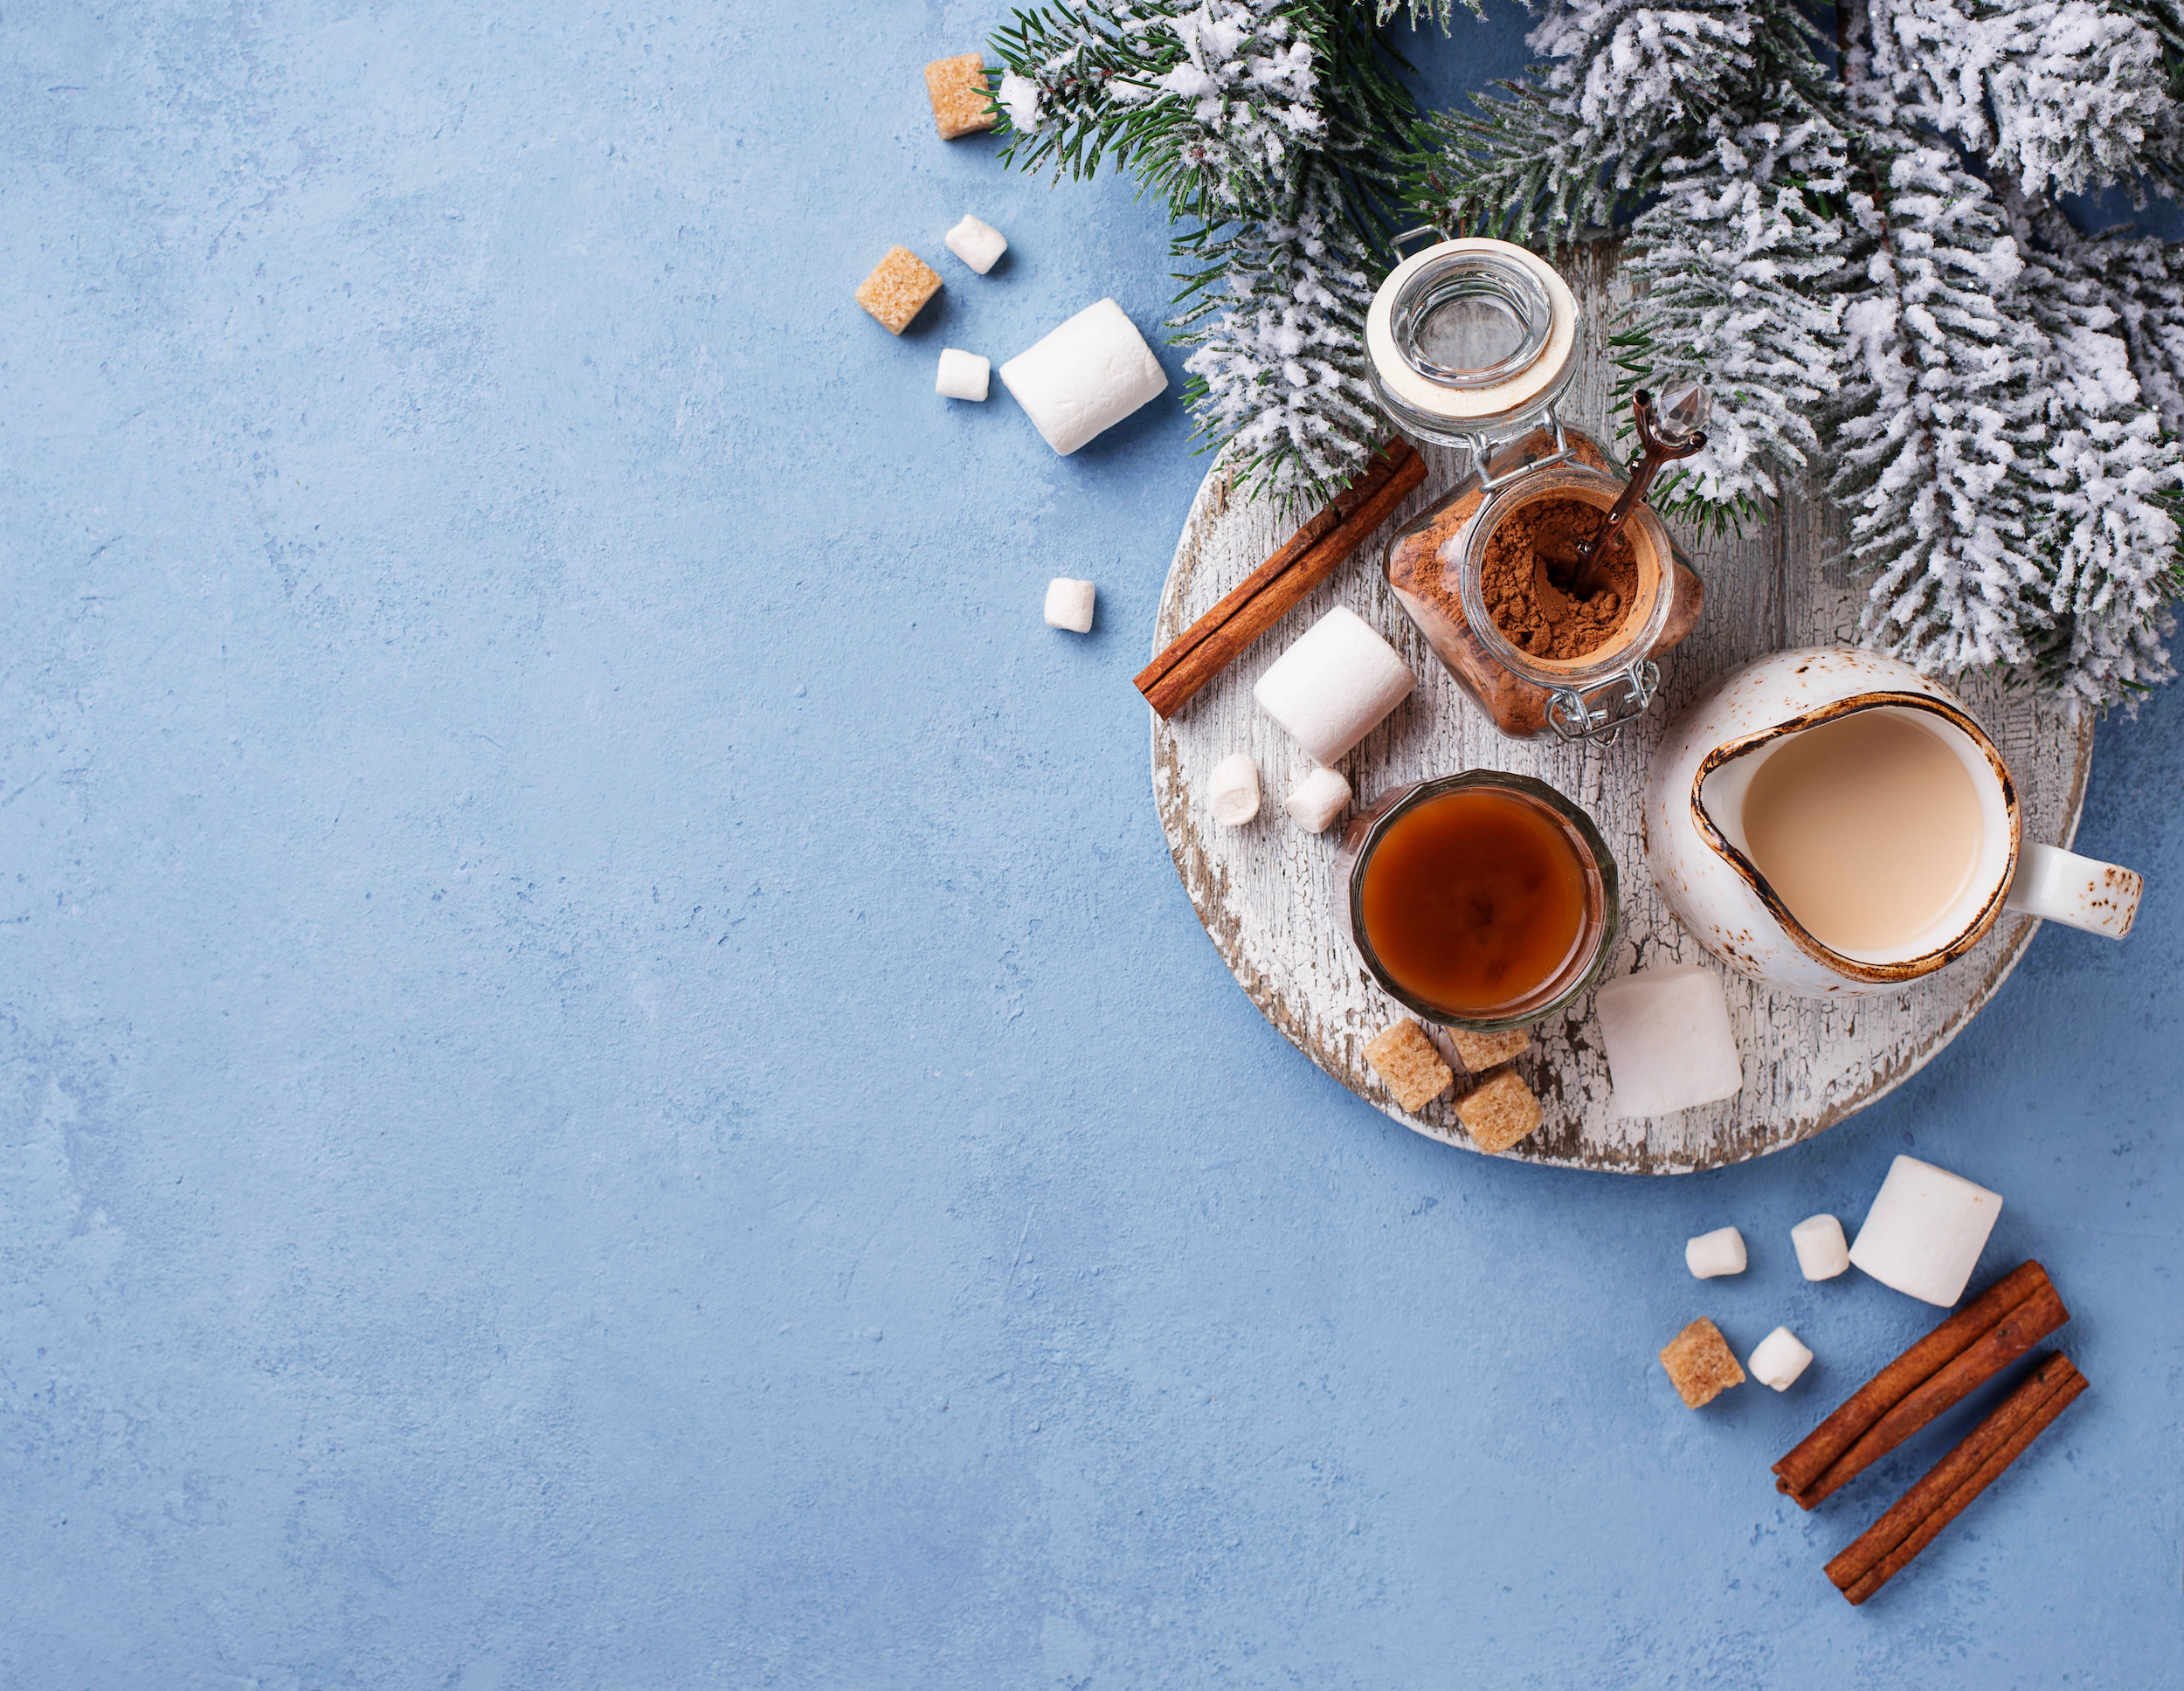 Ingredients for cooking hot chocolate or cocoa drink